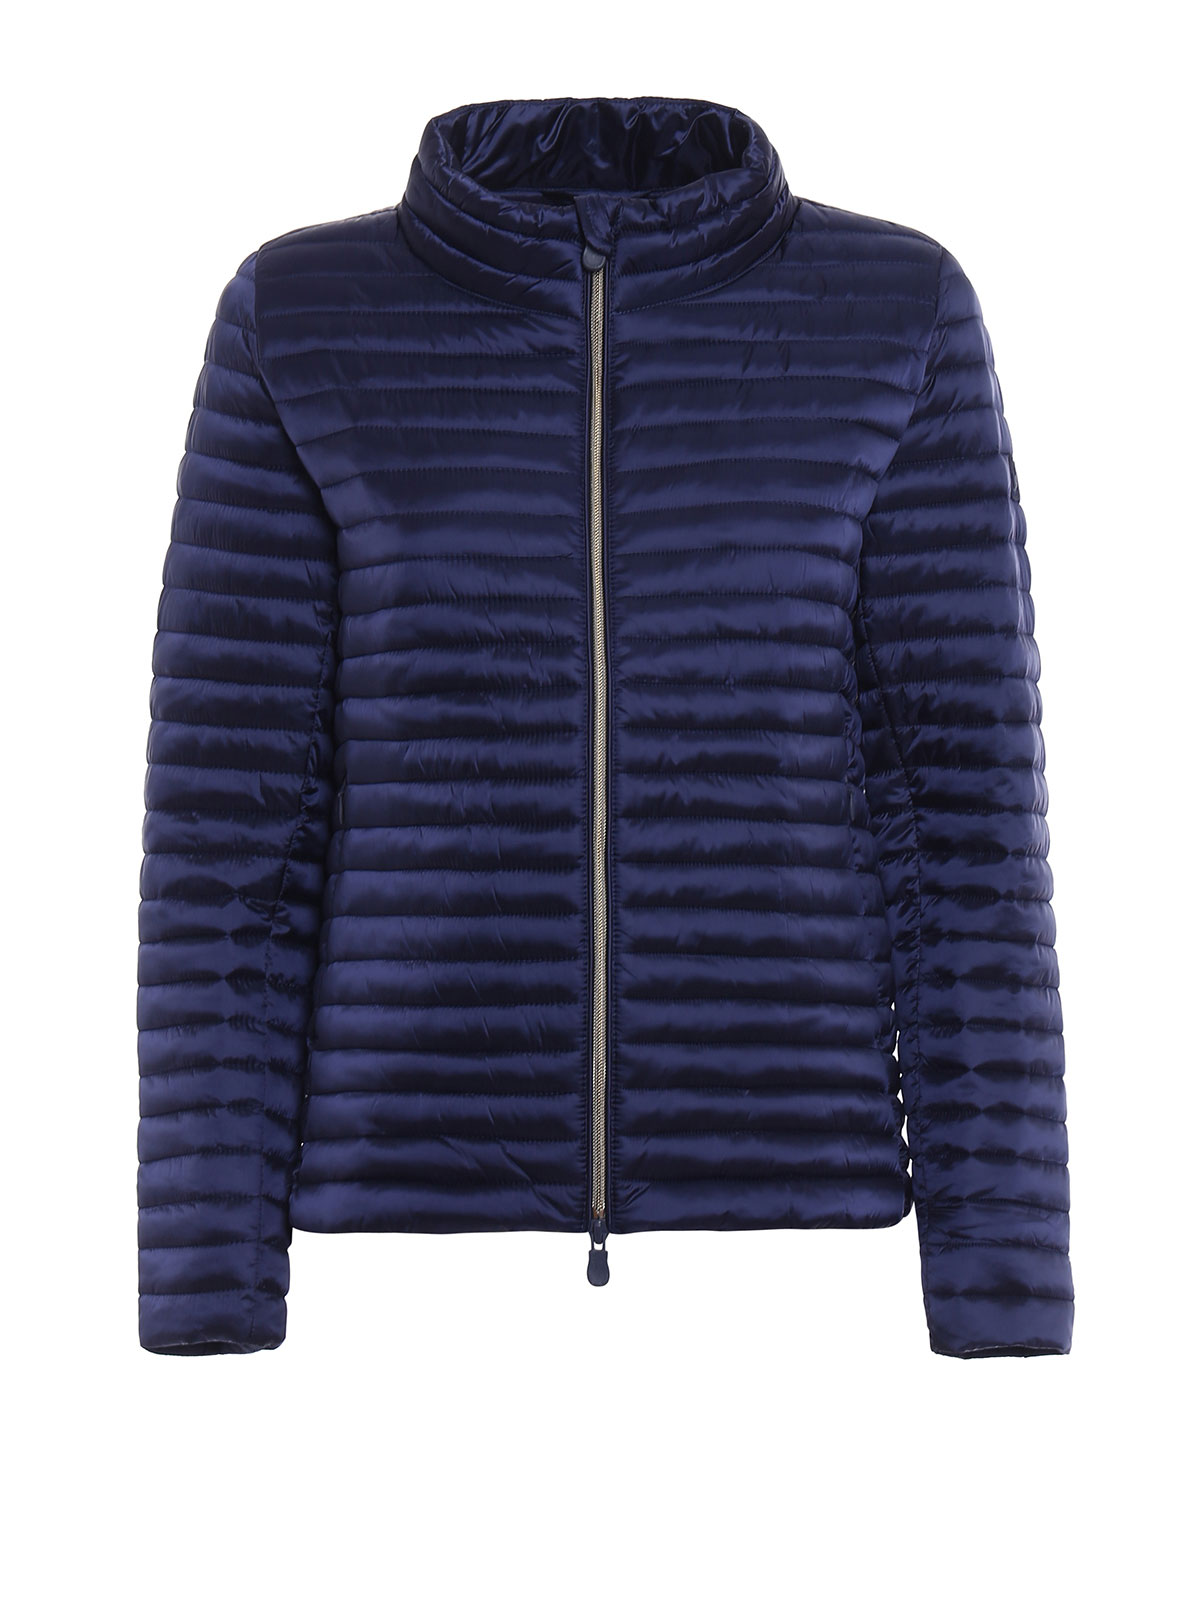 Picture of SAVE THE DUCK | Women's padded jacket D3682W IRIS6